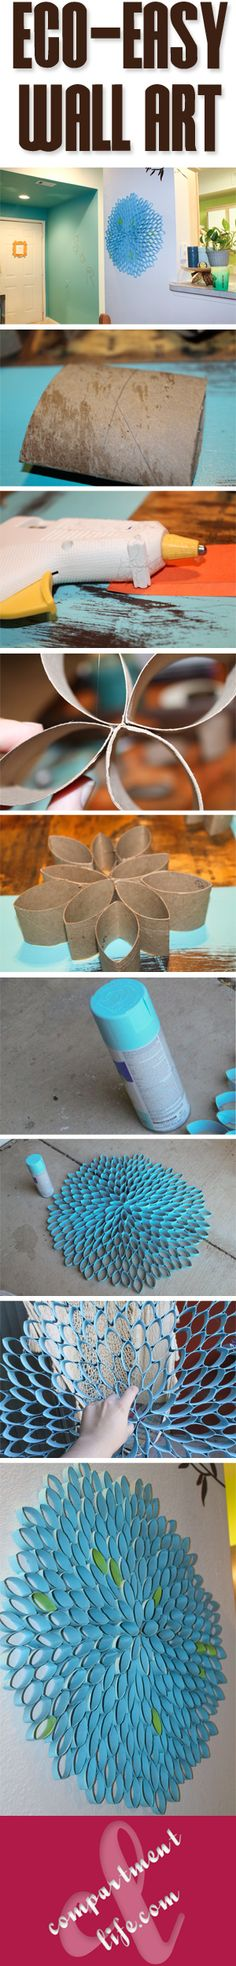 How to create a piece of wall art using toilet paper rolls and spray paint! #ecofriendly #cheap